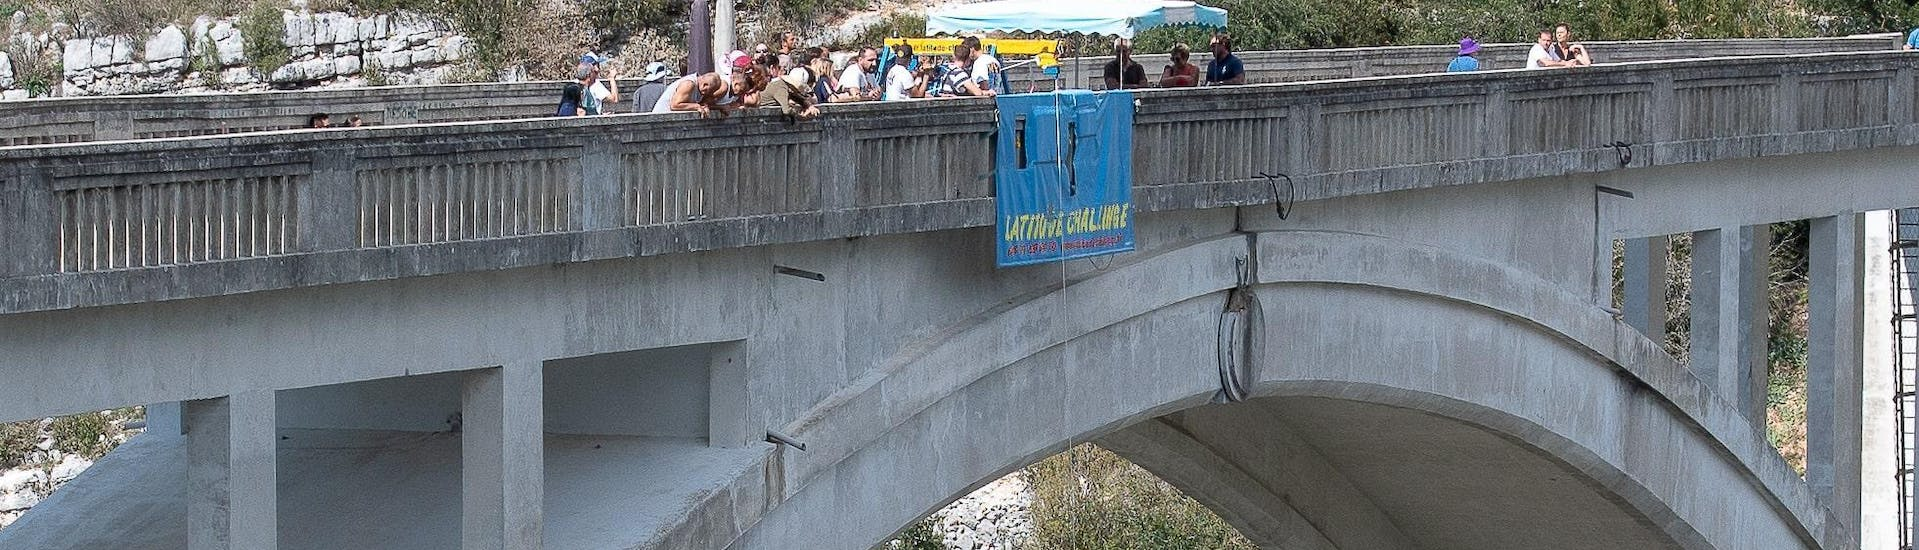 View of the Artuby Bridge, 182m high, where people do bungee jumping with Latitude Challenge.